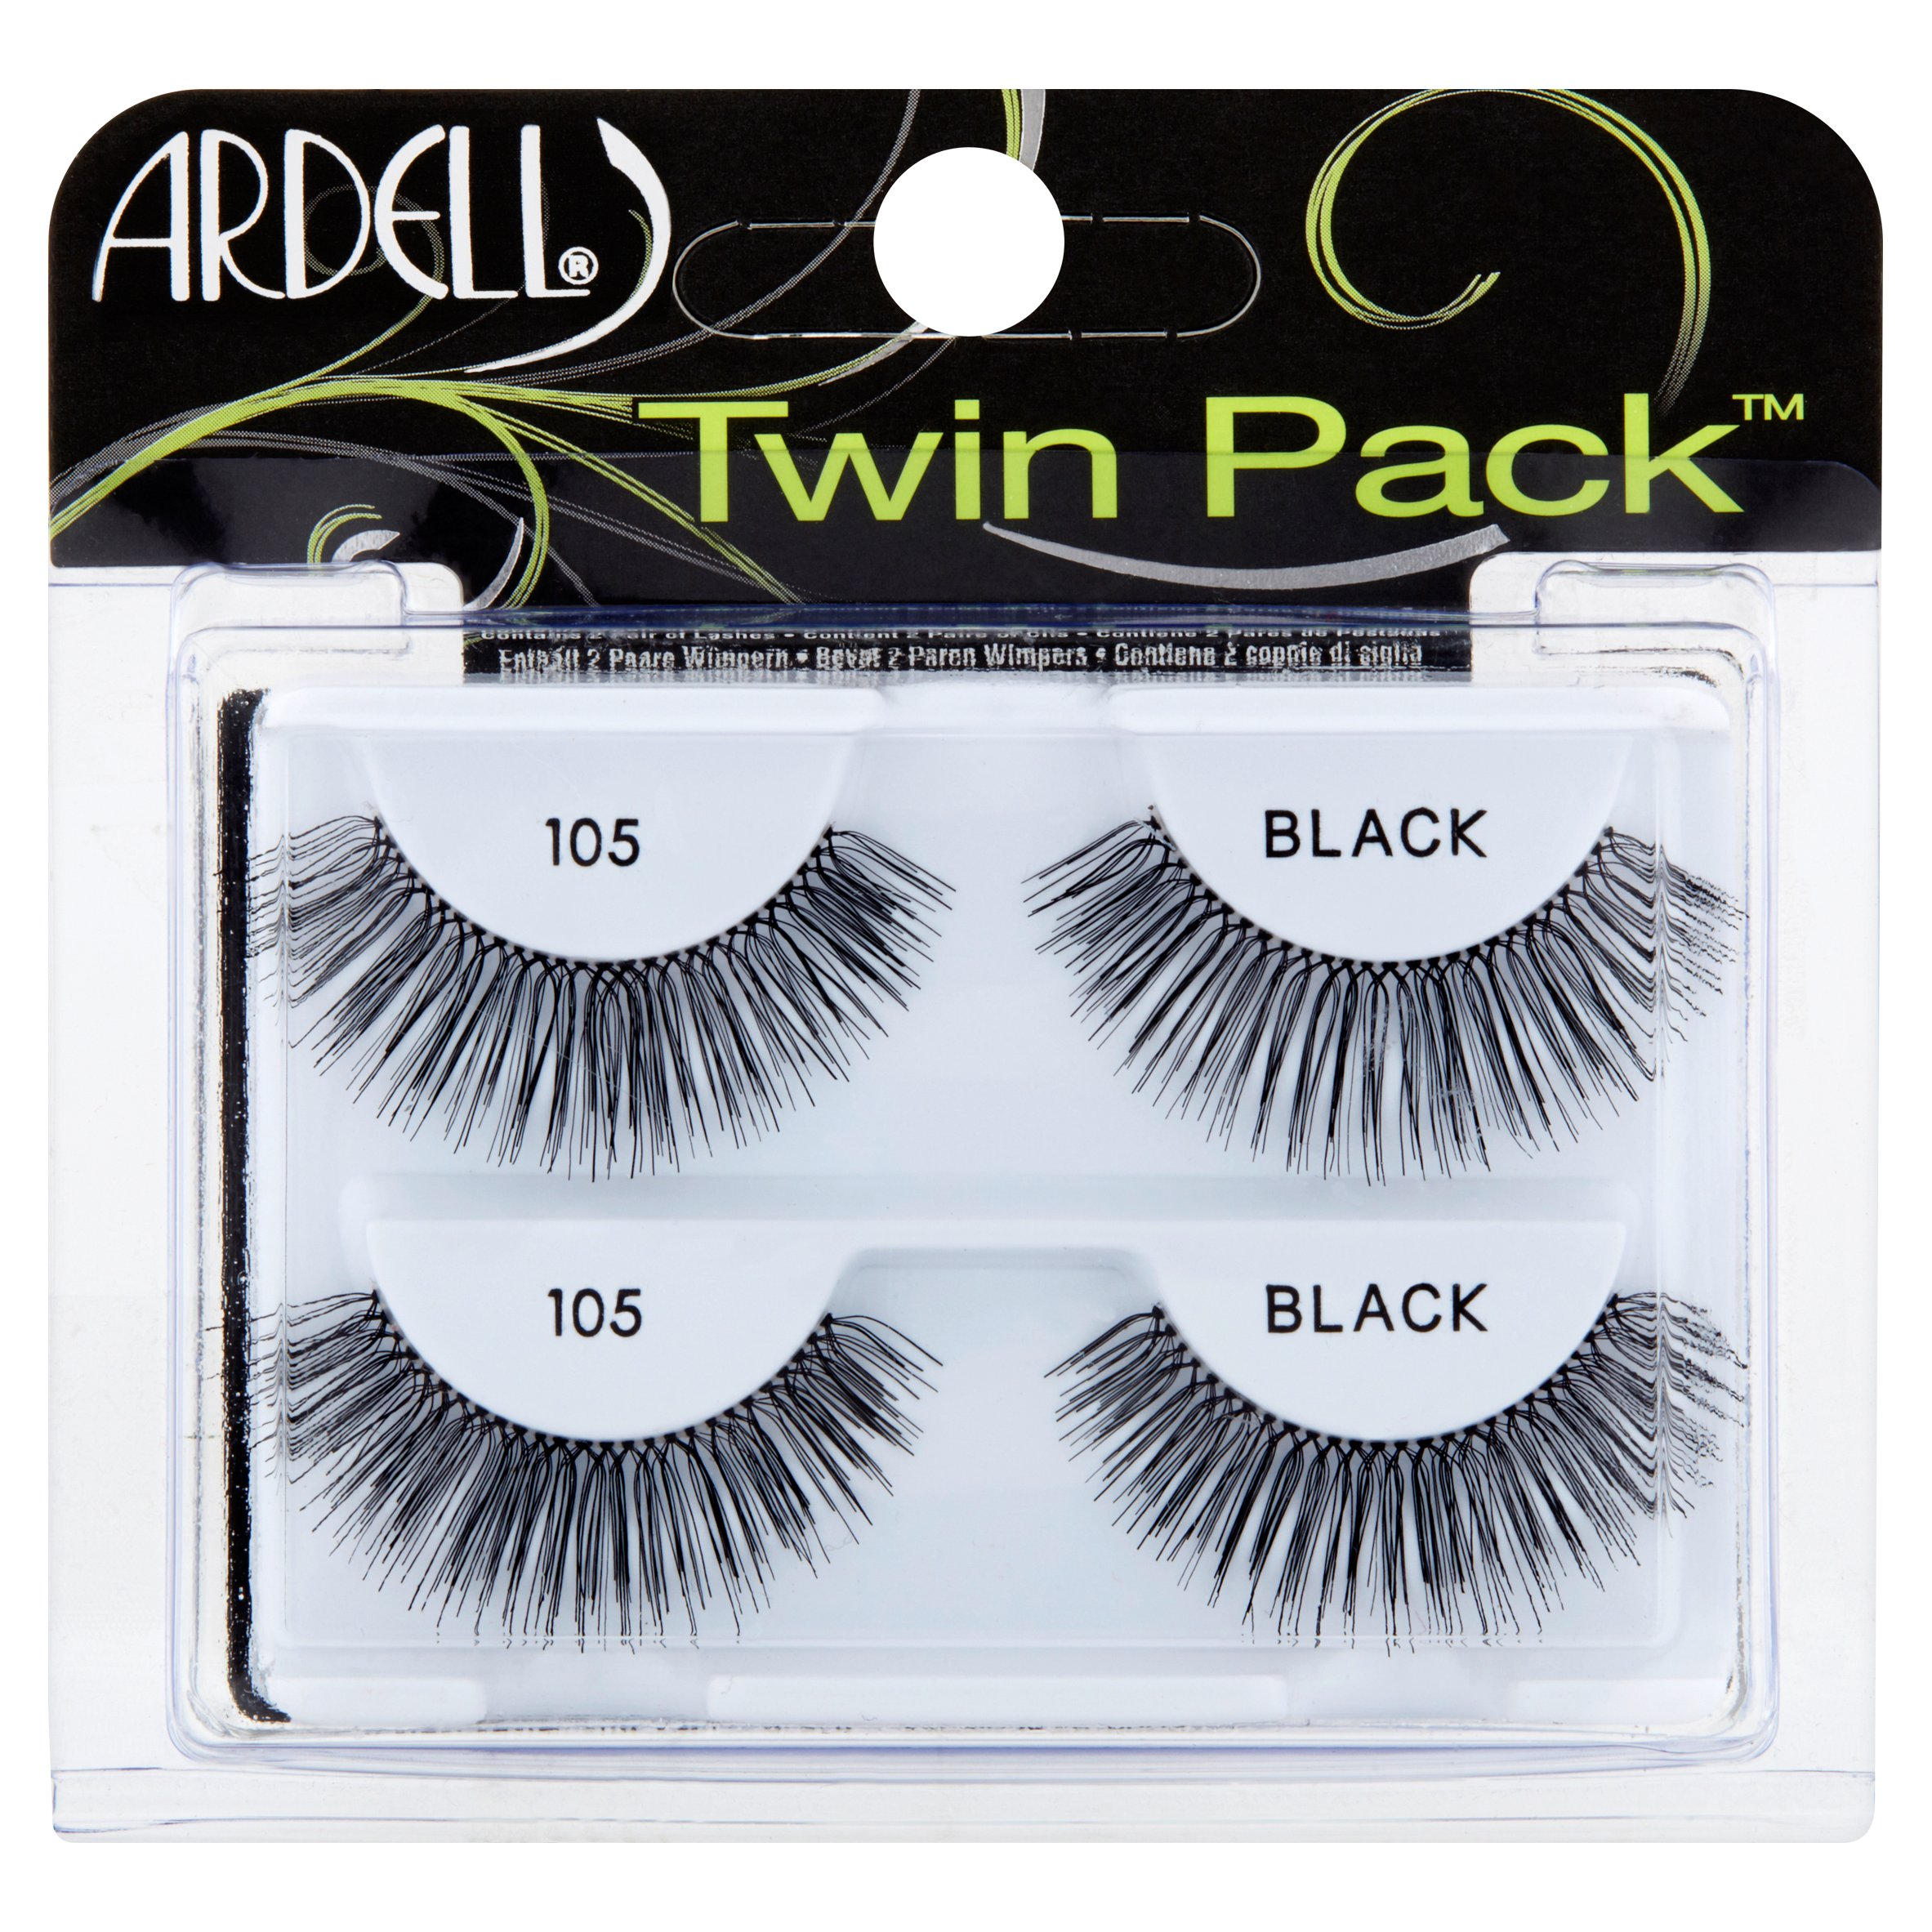 Ardell 105 Black Lashes Twin Pack, 2 pair